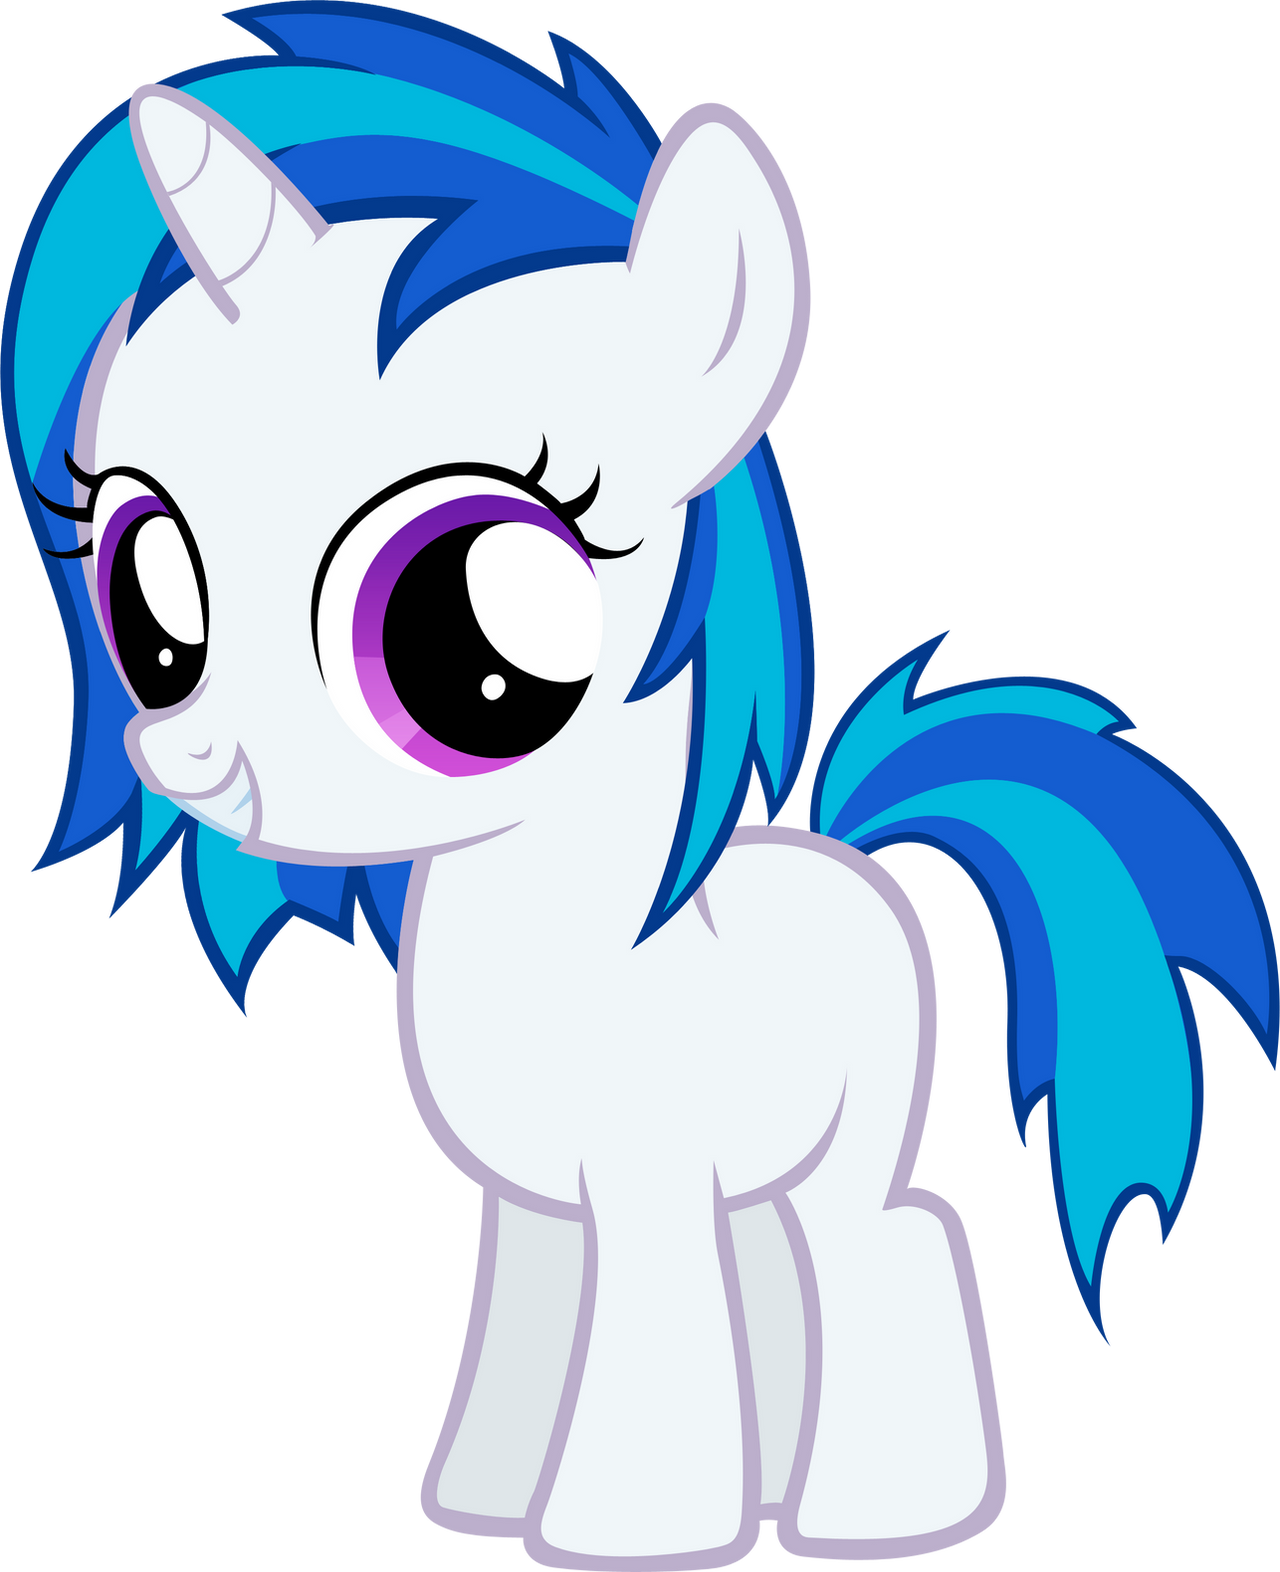 Vinyl Scratch Filly By Moongazeponies On Deviantart